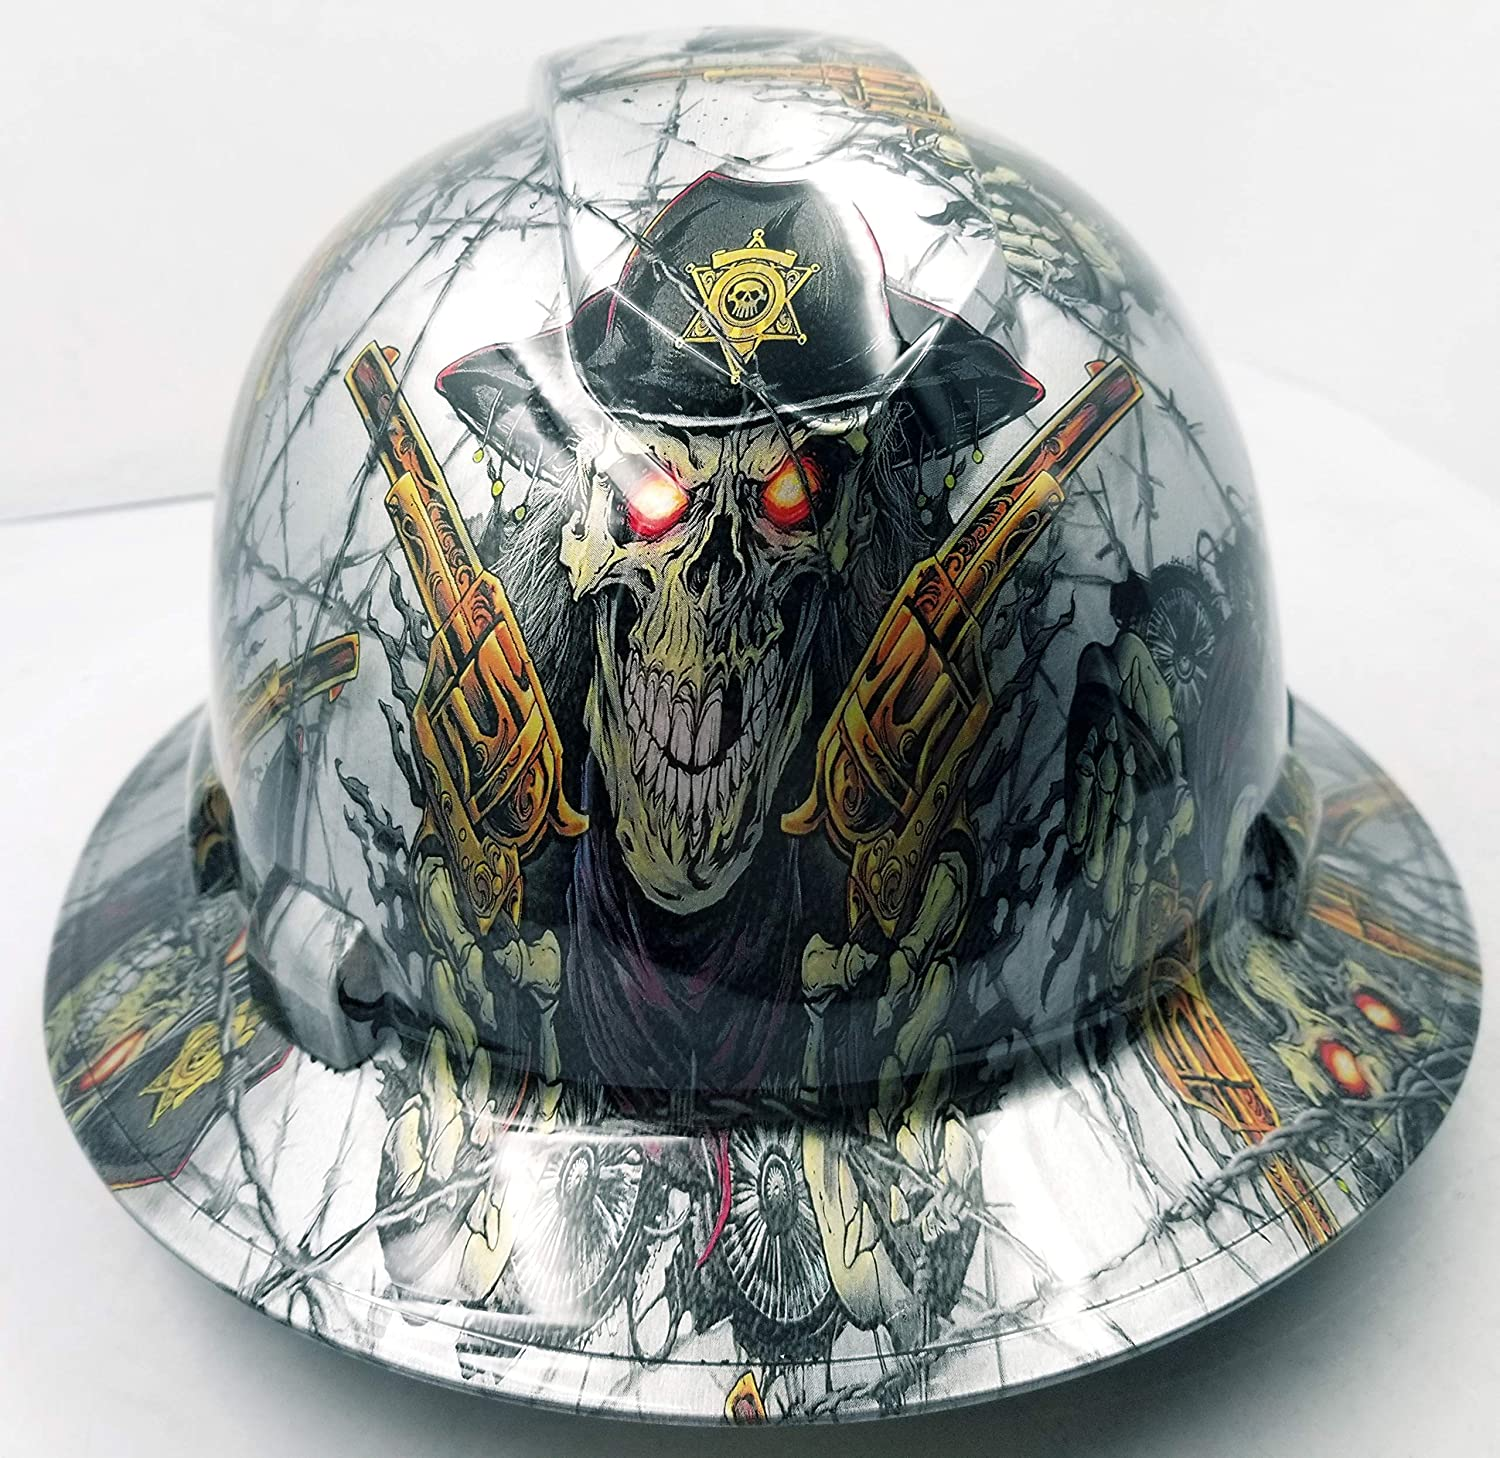 Wet works imaging customized pyramex full brim dirty dirty harry hard hat with ratcheting suspension custom lids crazy sick construction ppe amazon com